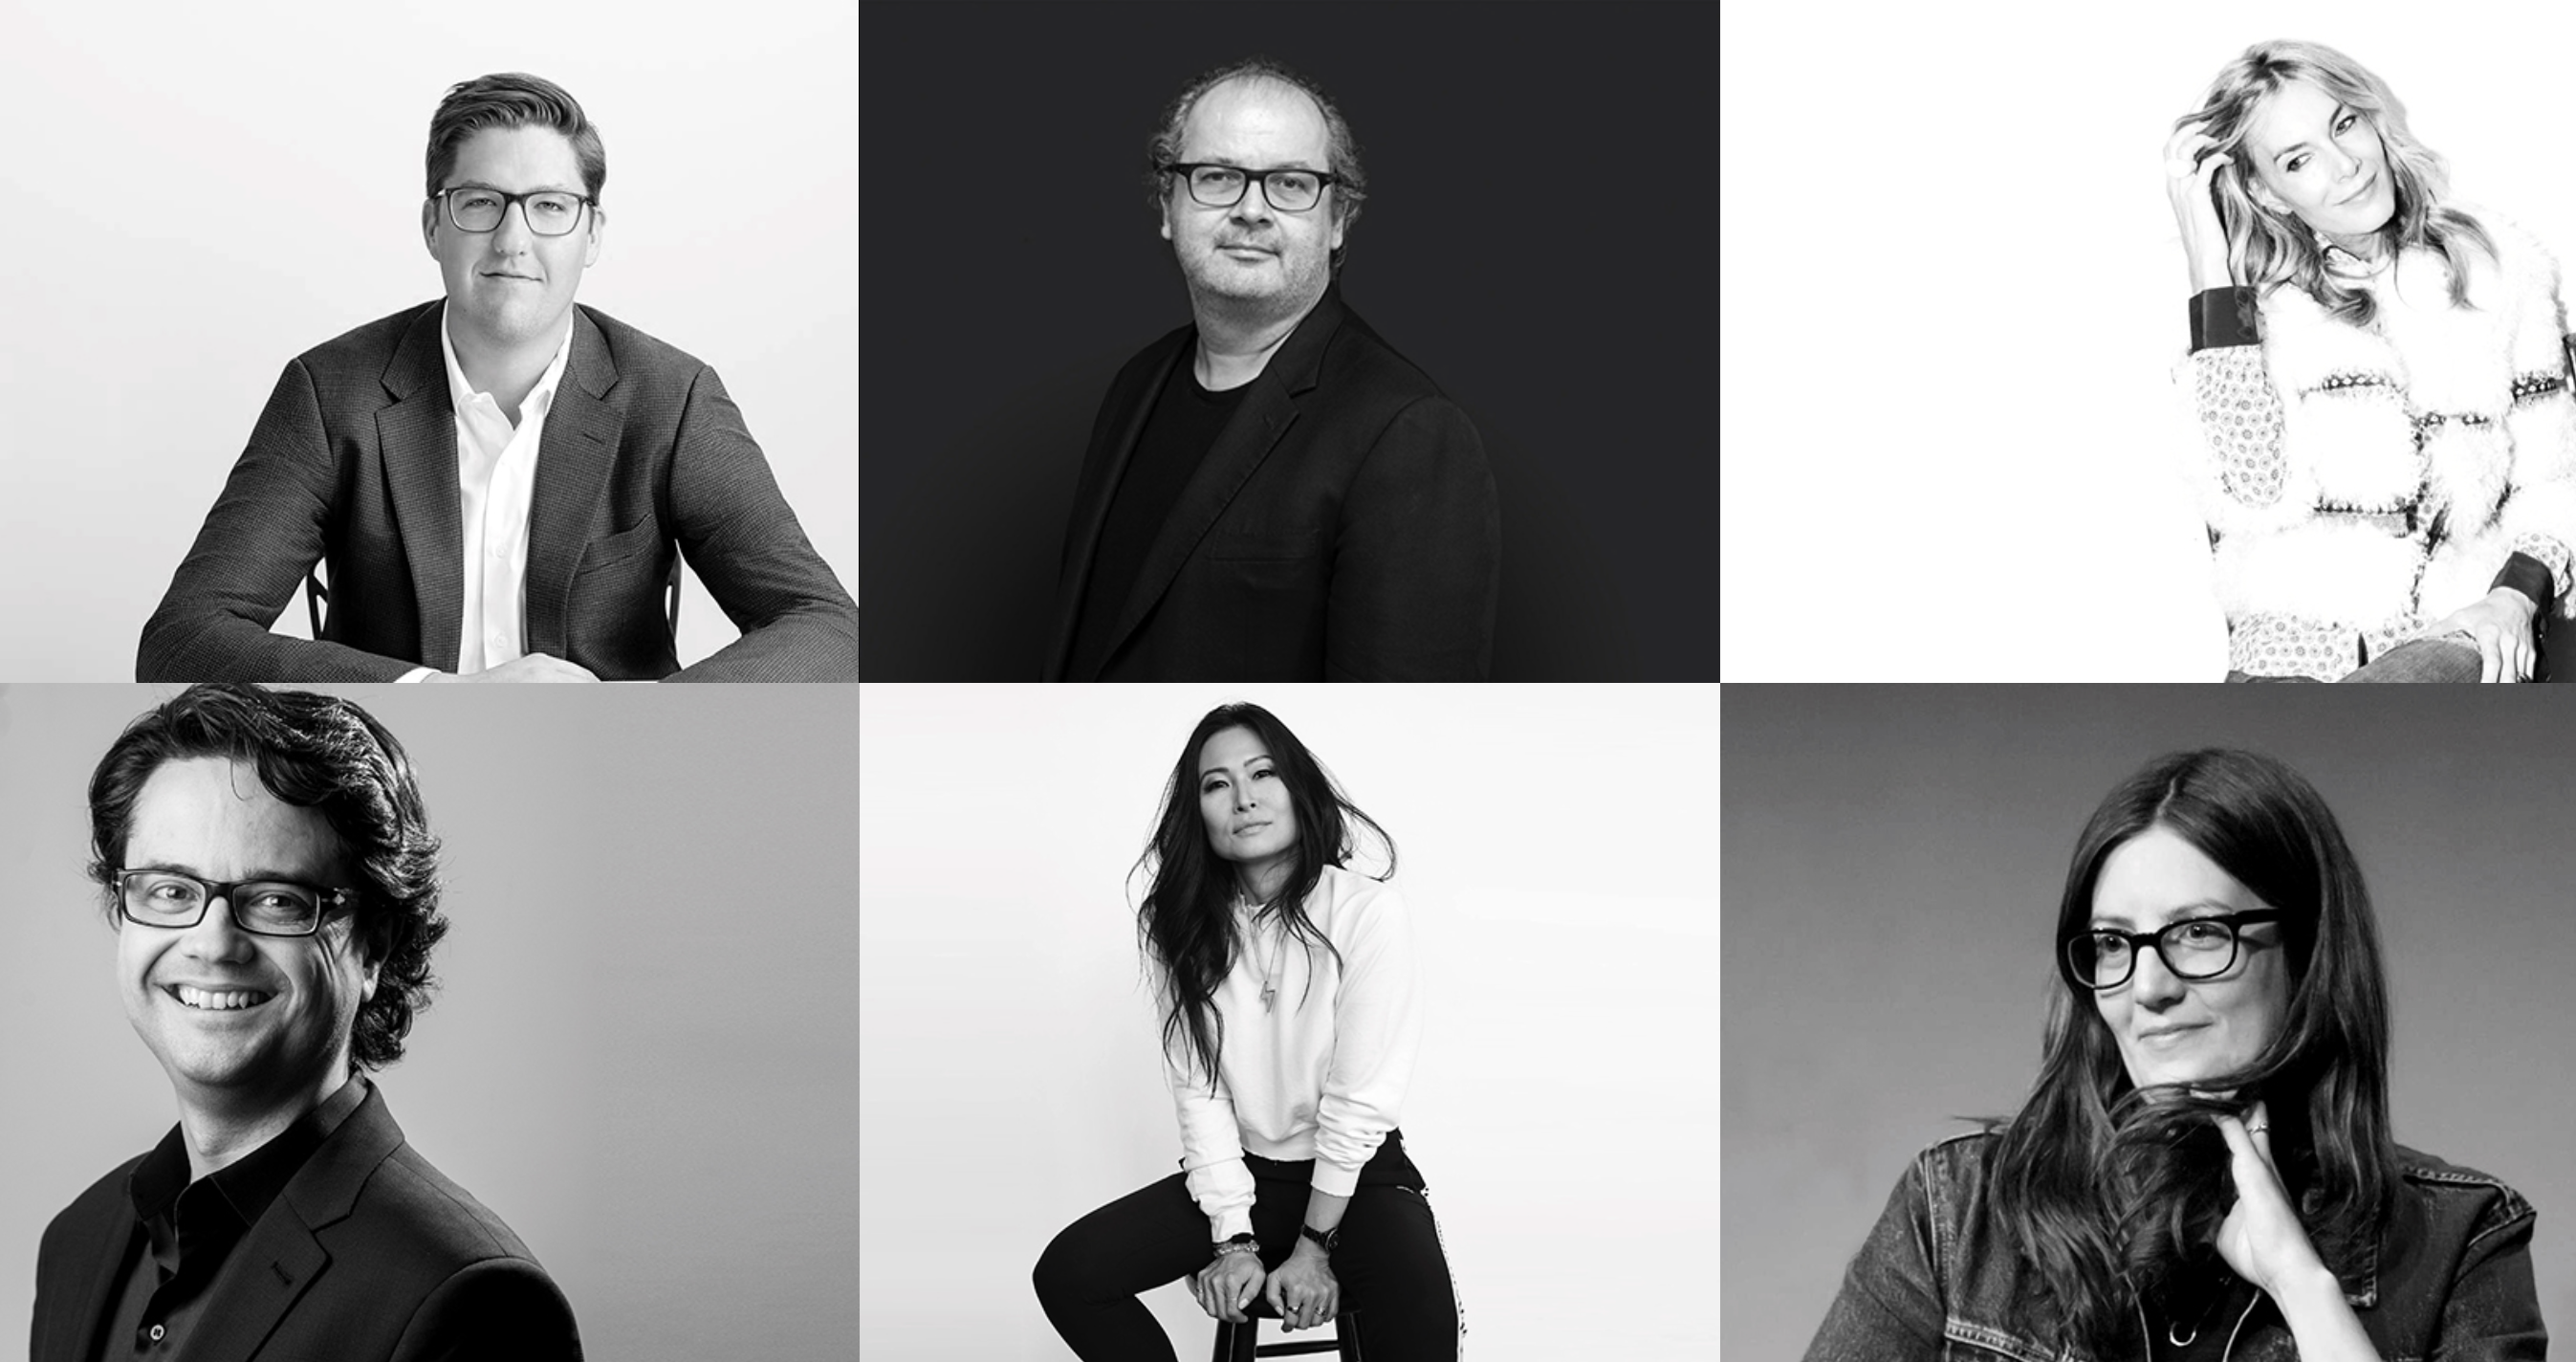 Bold Moves - Derrick Departs Spring, Richemont Promotes Guieysse, Grinnell Depart Vanity Fair